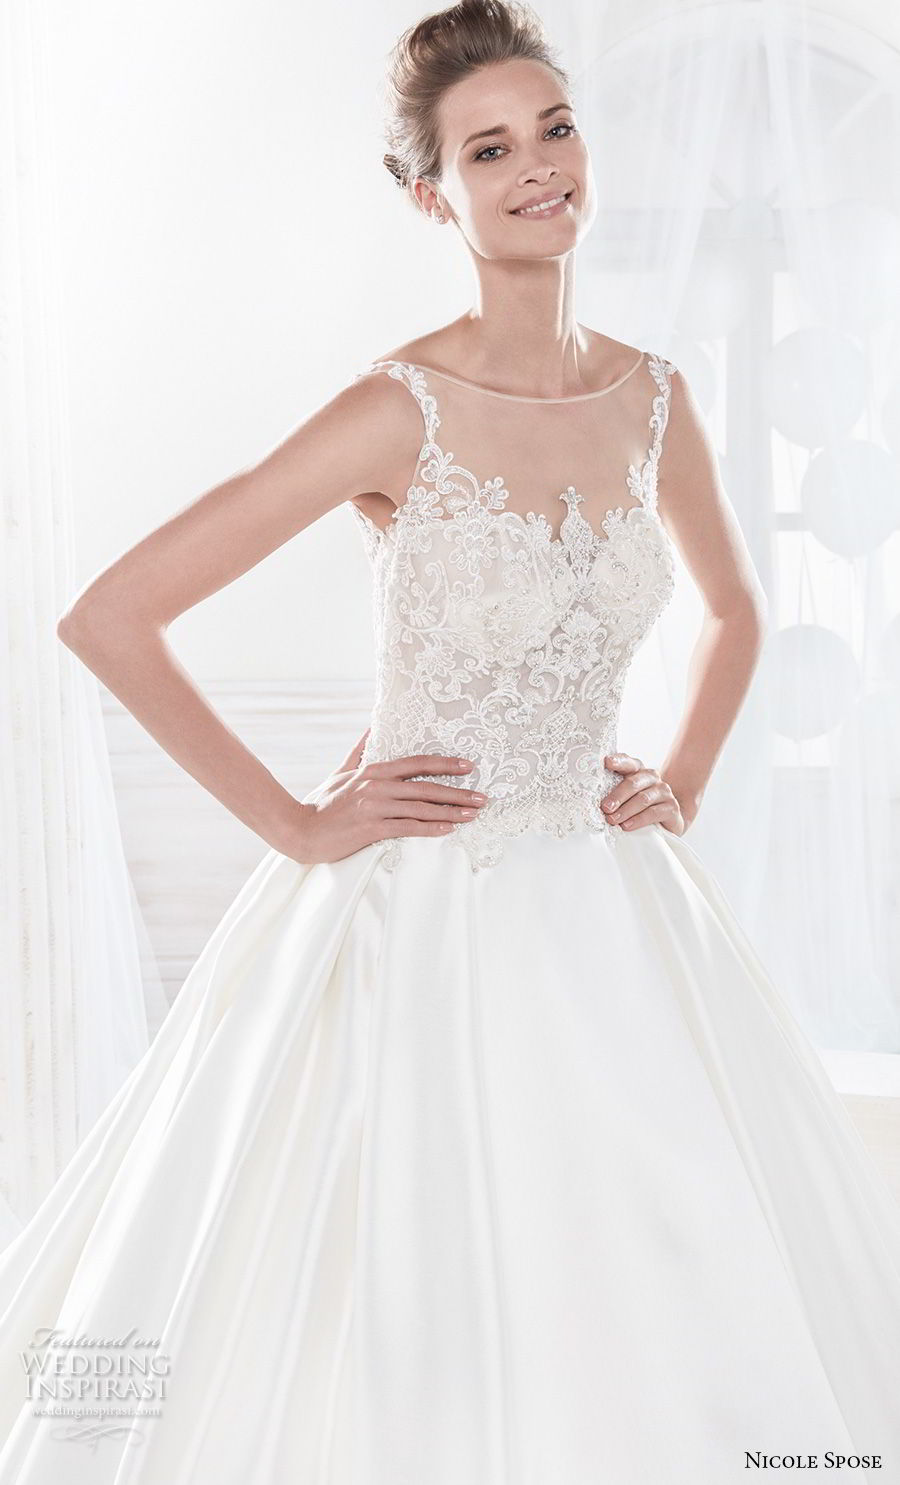 nicole spose 2018 bridal sleeveless sheer bateau sweetheart neckline heavily embellished bodice satin skirt a line wedding dress with pockets chapel train (19) zv